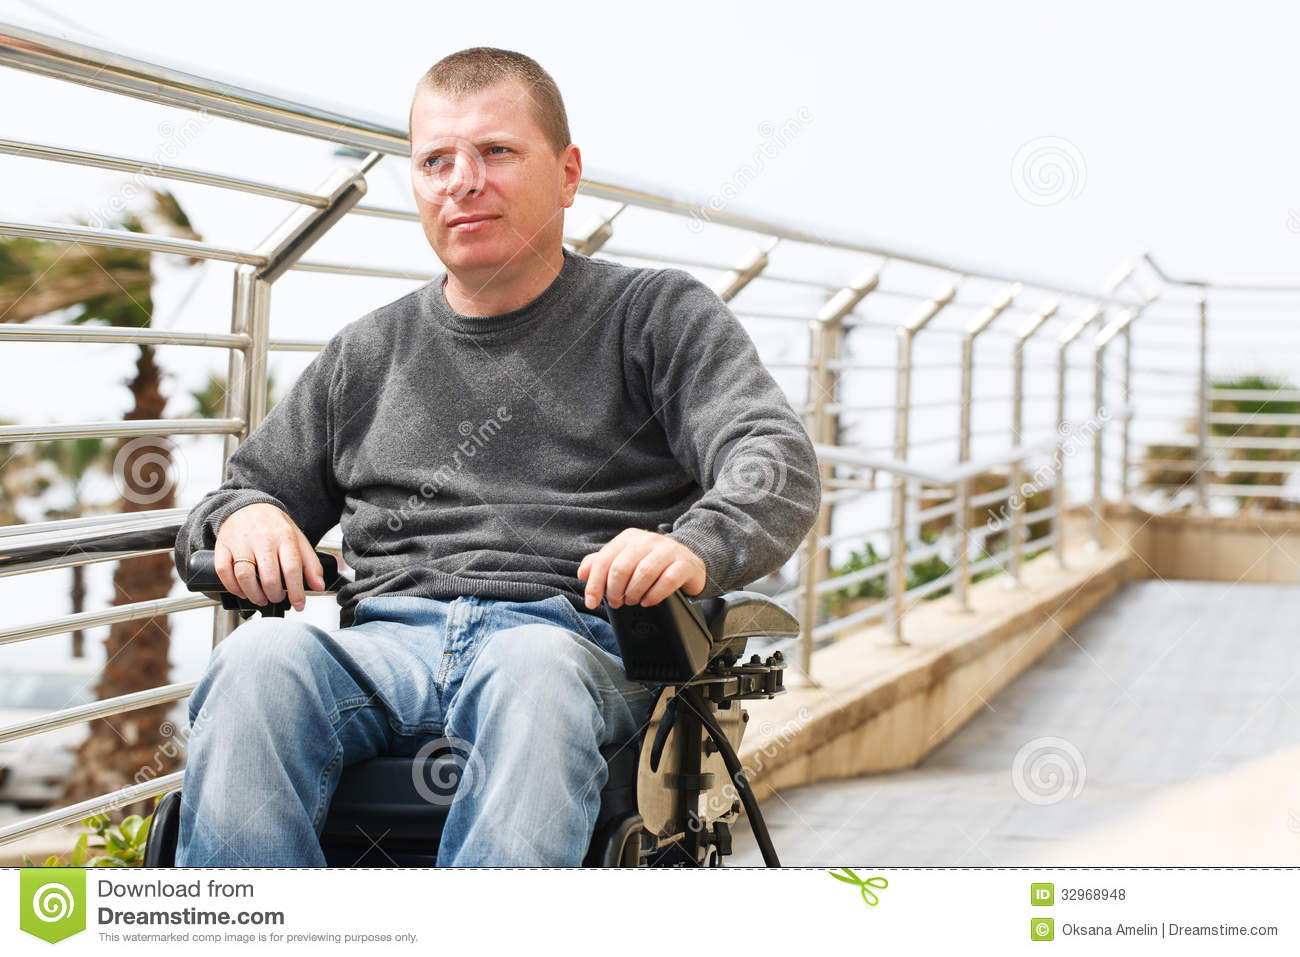 wheelchair man swivel chair habitat paraplegic royalty free stock photos image